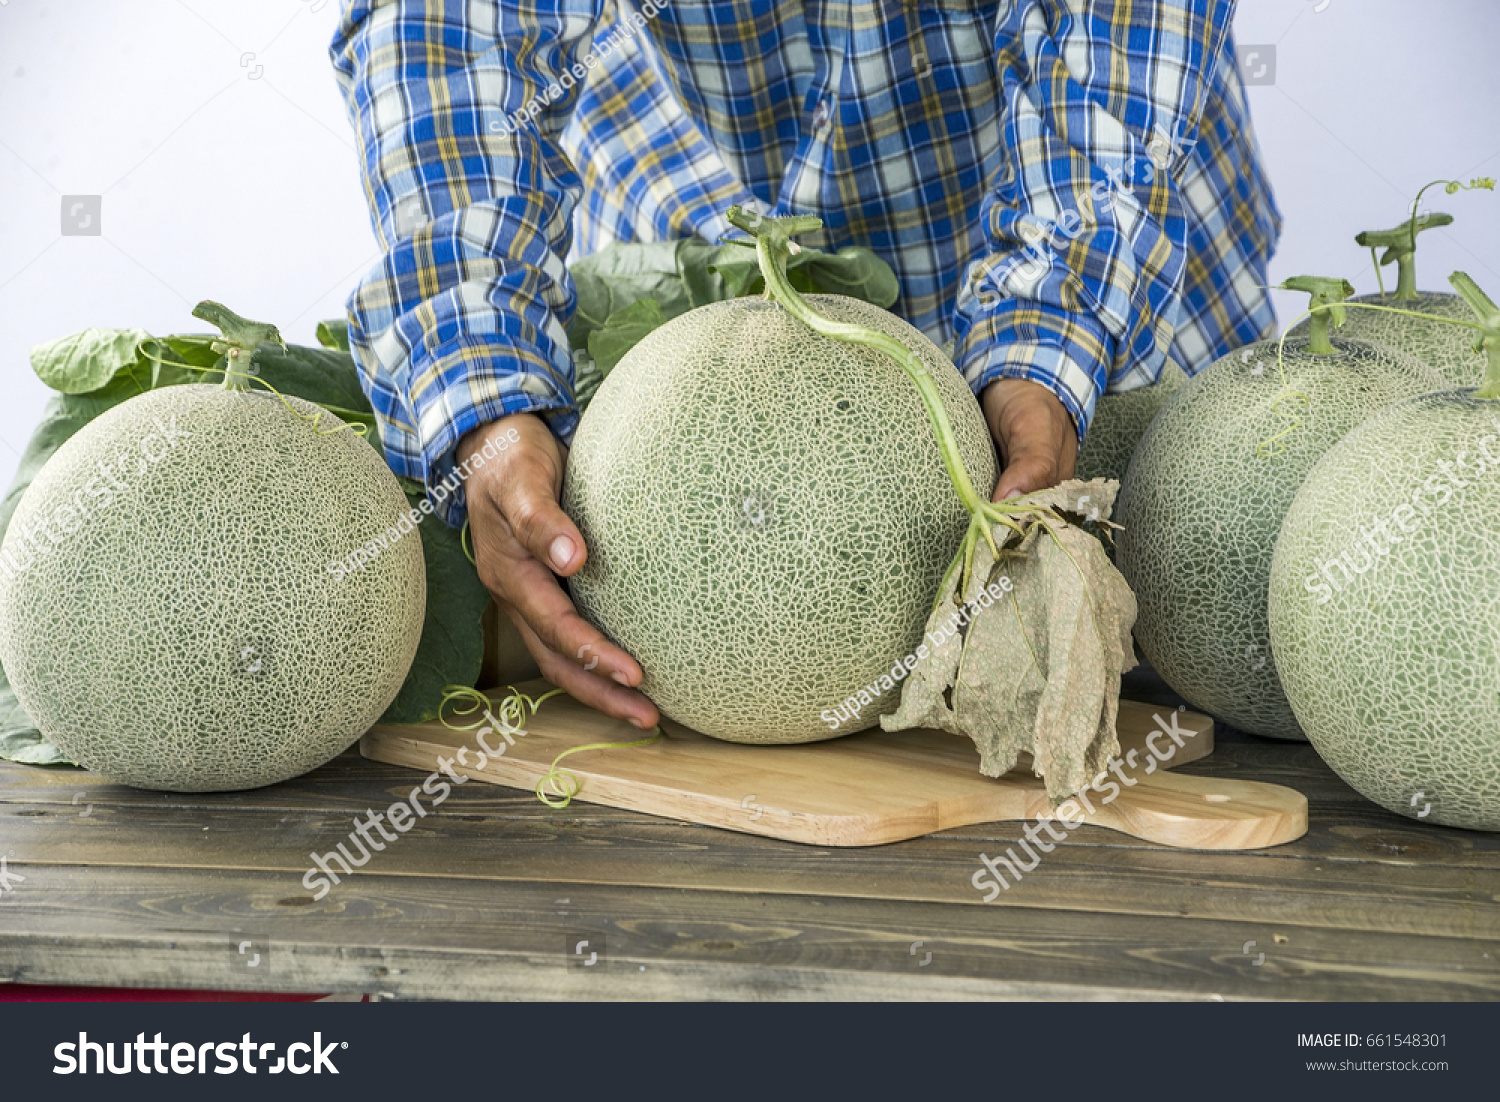 Farmer Hand Holding Melon Check Size Stock Photo Edit Now 661548301 Learn all about the different types of cantaloupes so you can distinguish each type, know the distinct ideal growing time for each, and learn to differentiate cantaloupes from muskmelons. https www shutterstock com image photo farmer hand holding melon check size 661548301